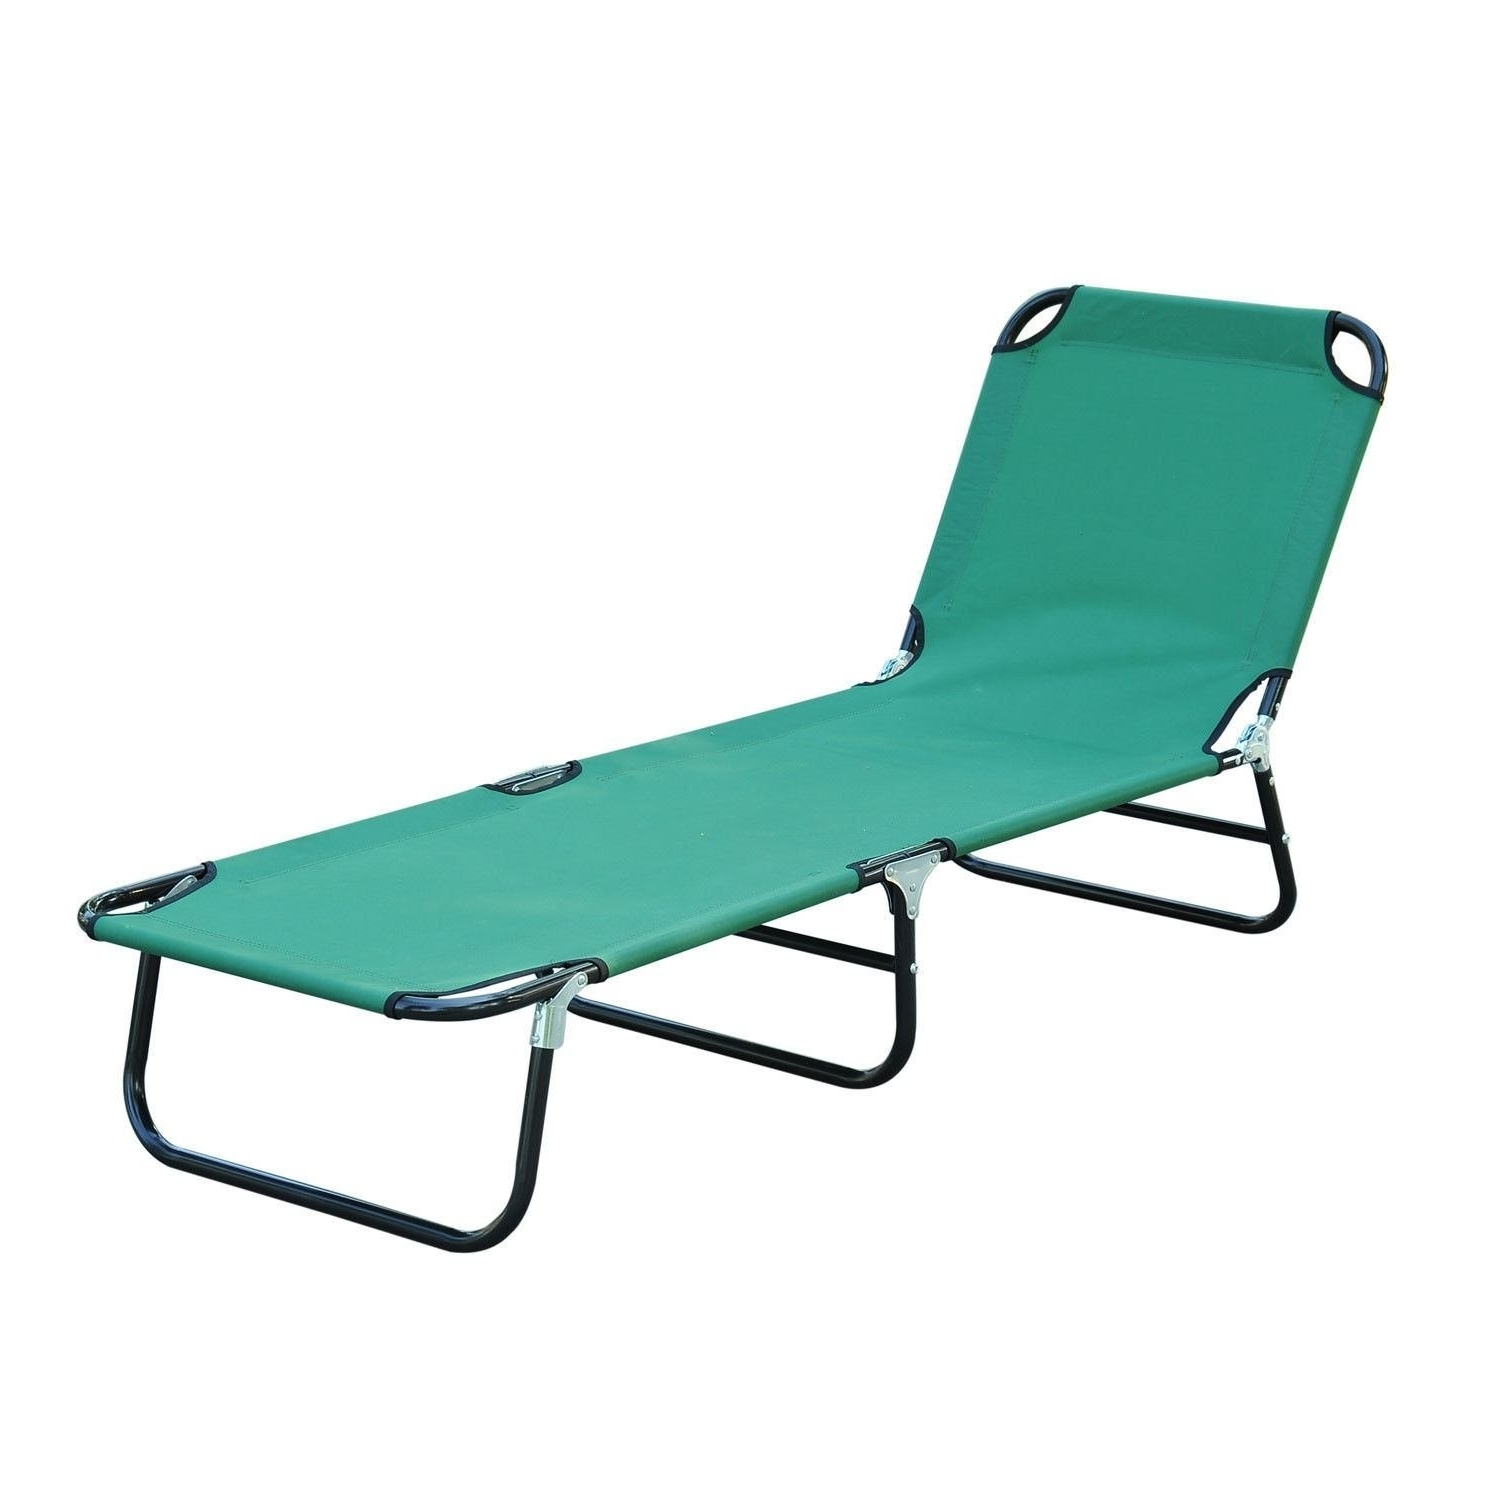 Well Known Beach Chaise Lounges Within Amazon : Outdoor Sun Chaise Lounge Recliner Patio Camping Cot (View 13 of 15)